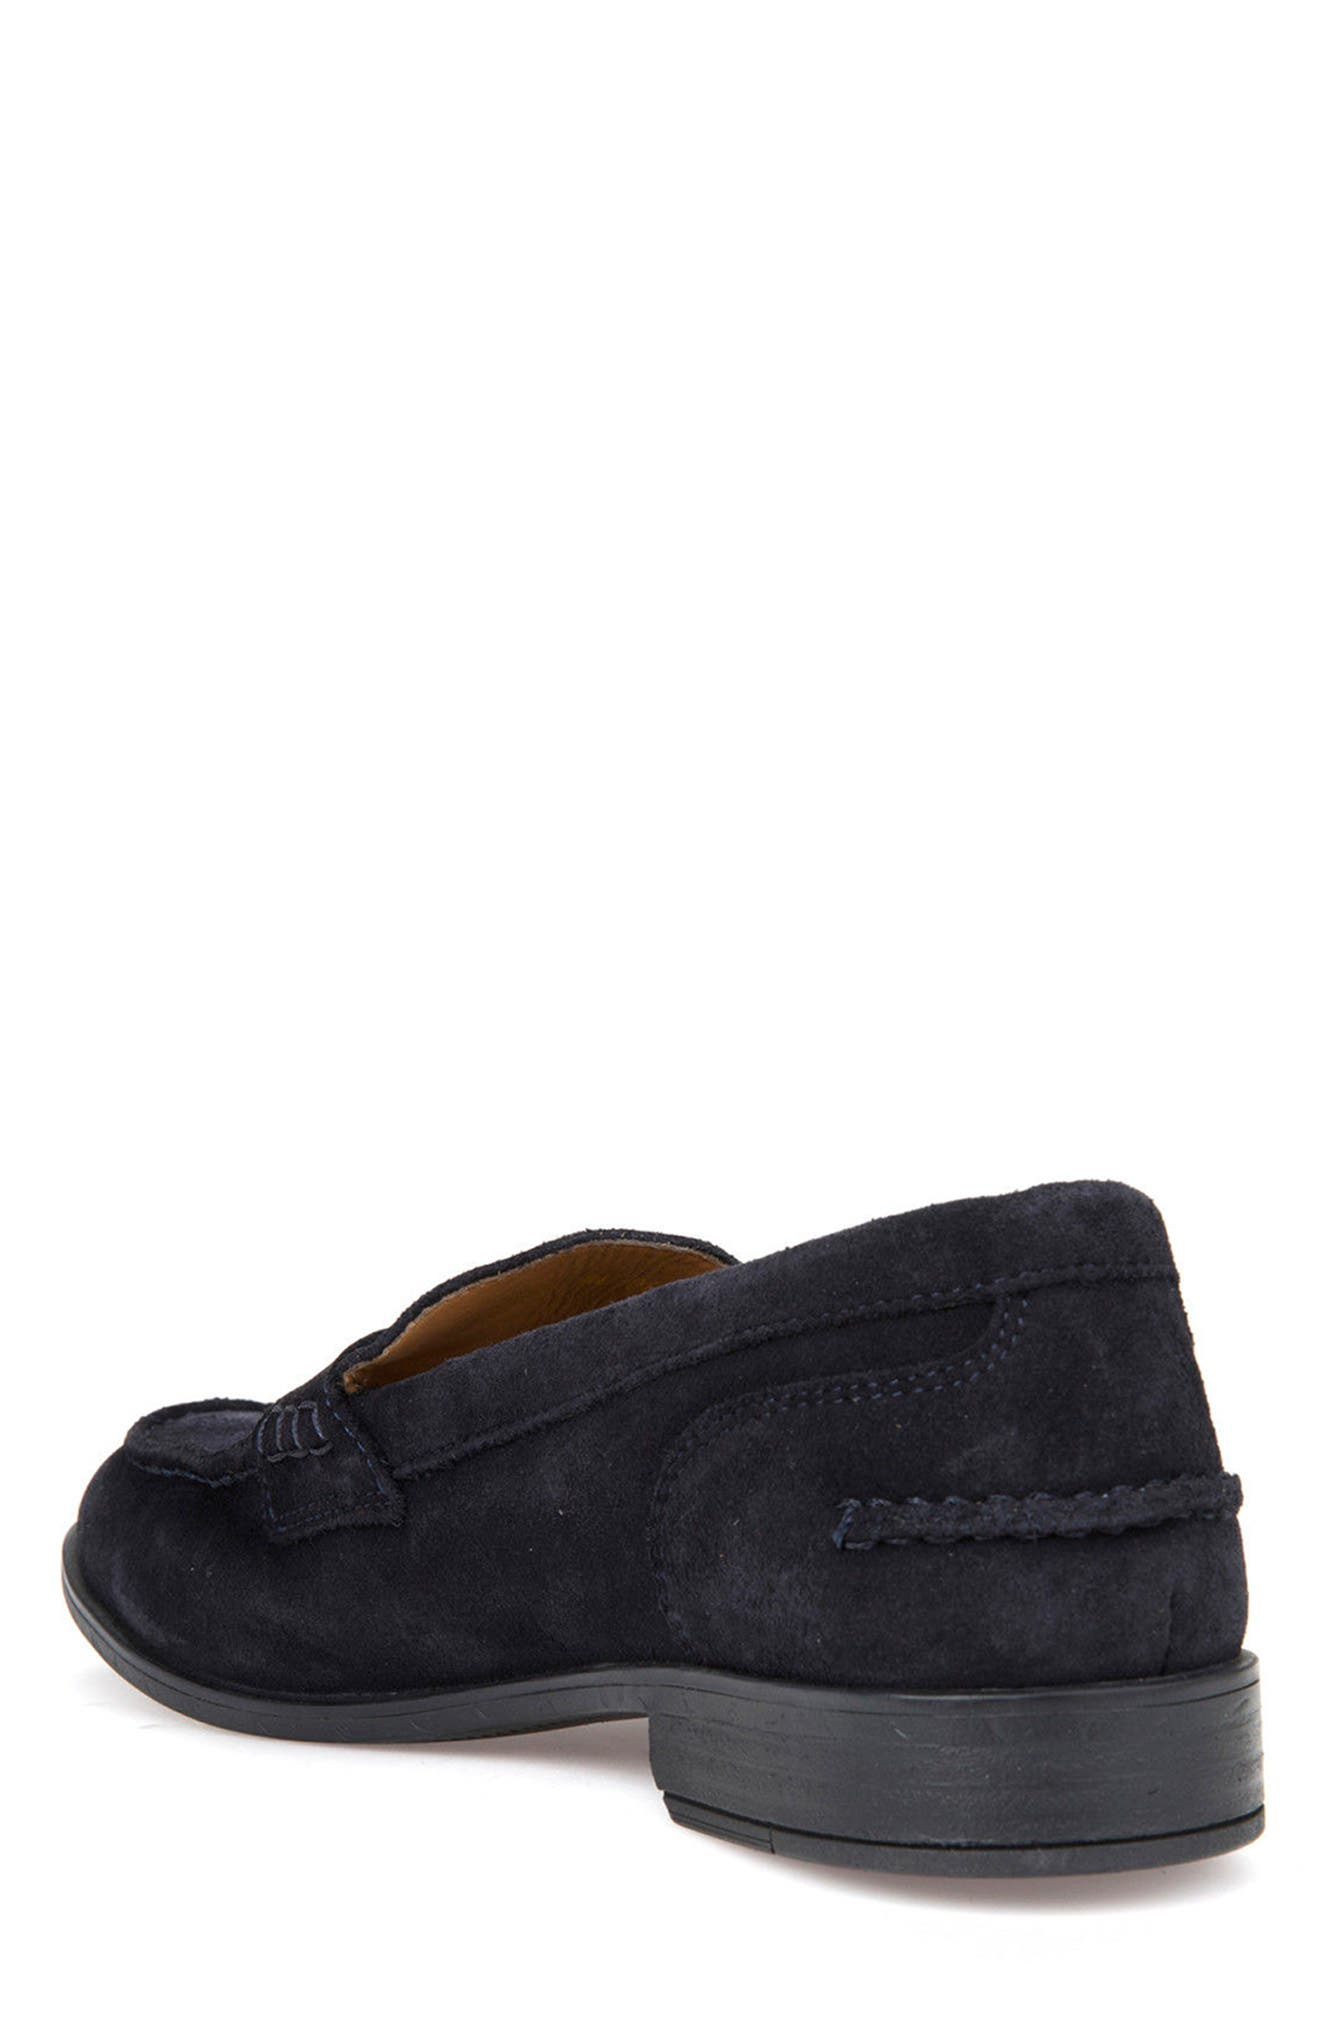 Bryceton 1 Tassel Loafer,                             Alternate thumbnail 2, color,                             Navy Suede